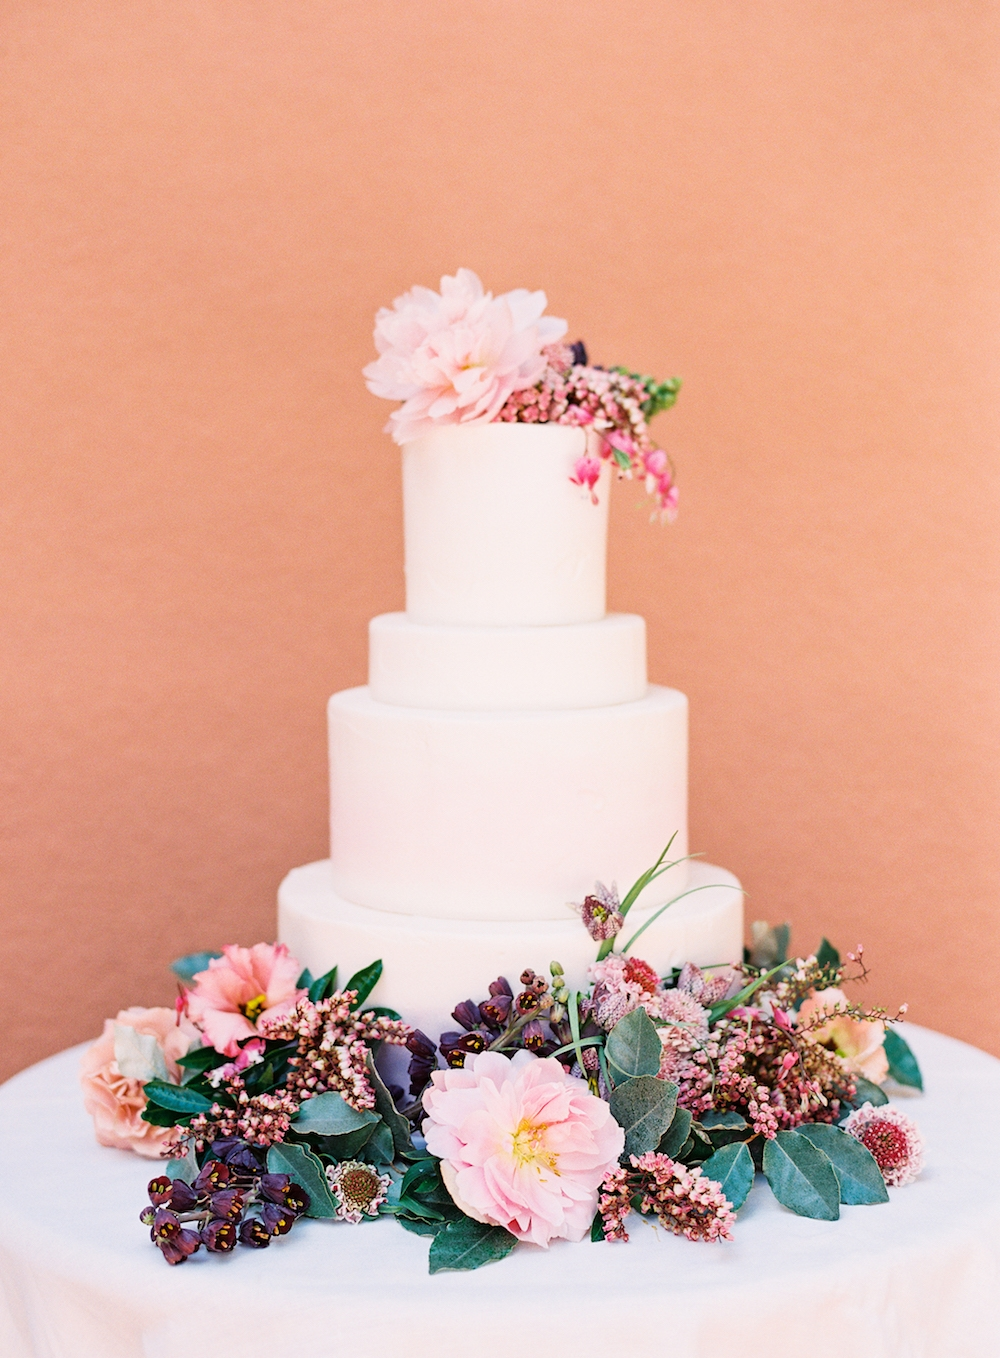 Photo by Kayla Barker from the Bows & Arrows workshop; cake by Sugar Bee Sweets.